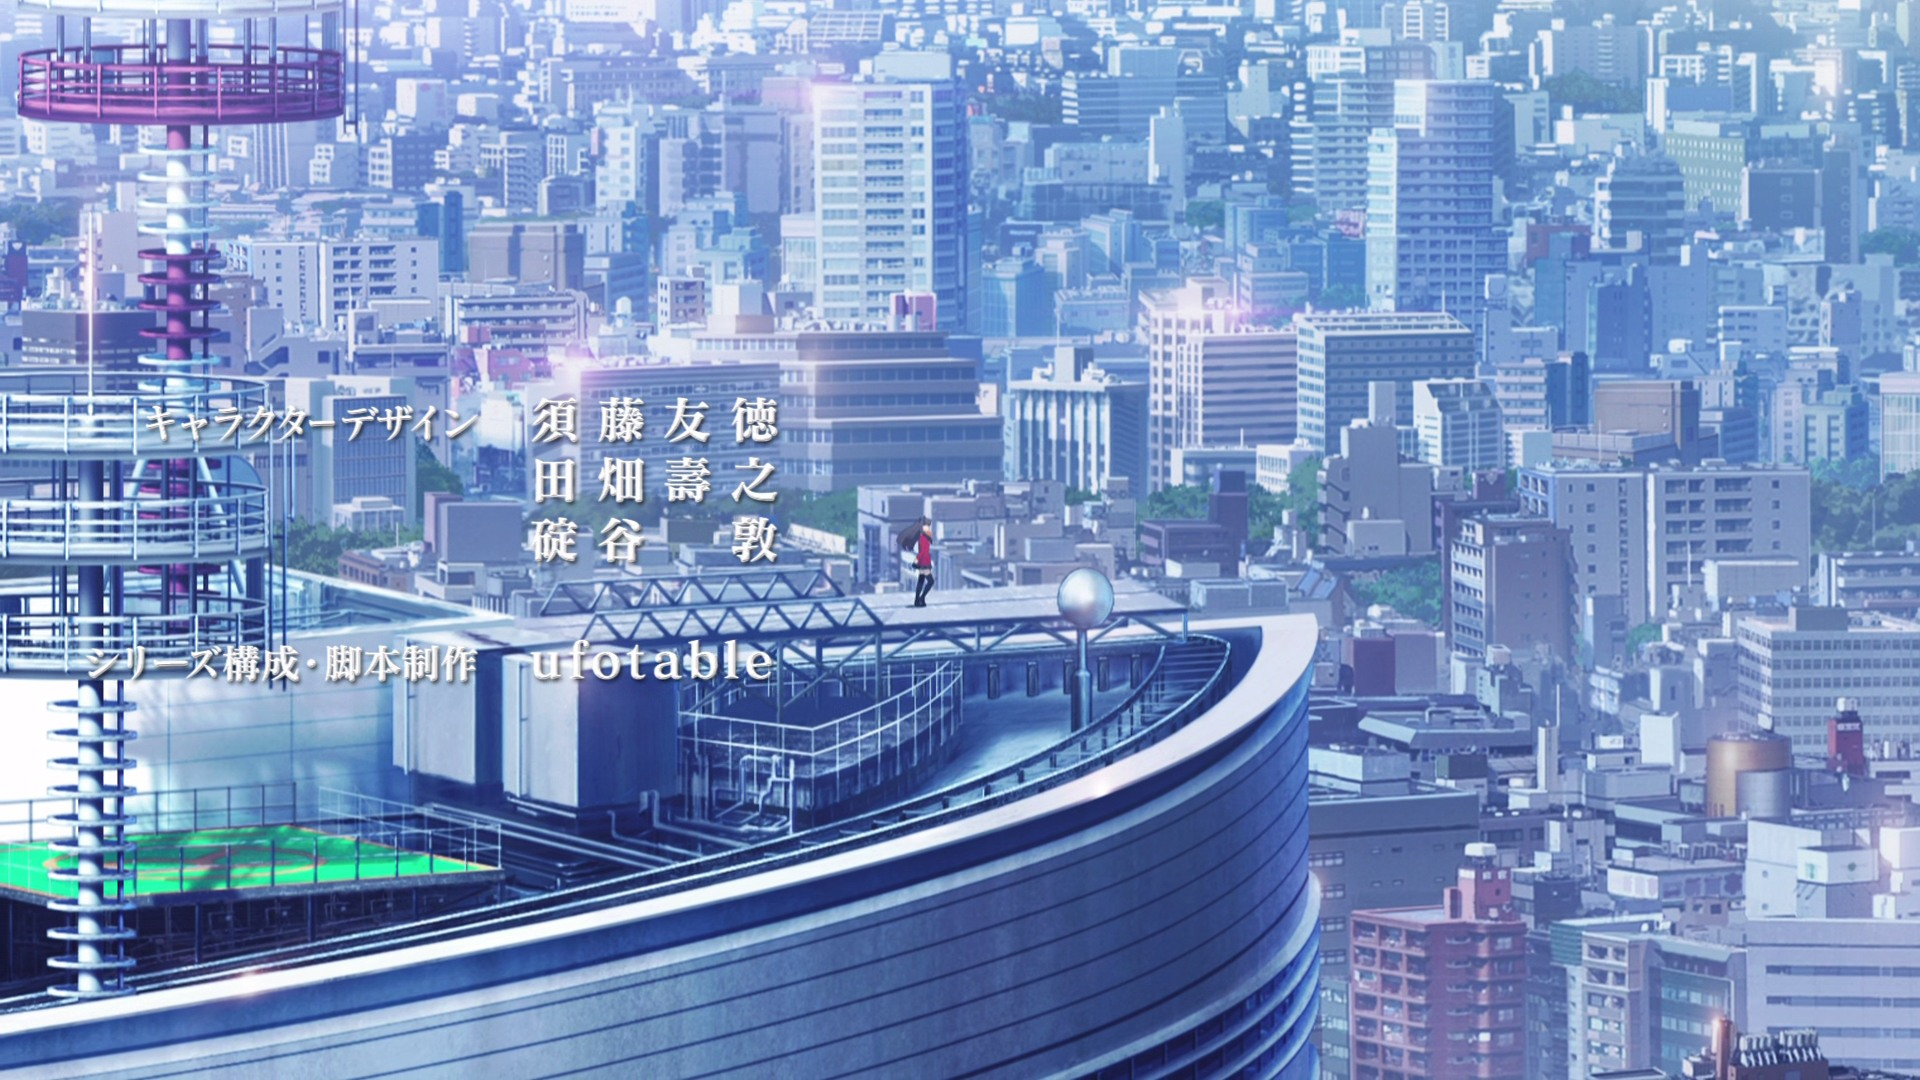 Fate/stay night 命运之夜 UBW Unlimited Blade Works 第19集 00分55秒 右手には空の記憶 誰もしらない世界の果て